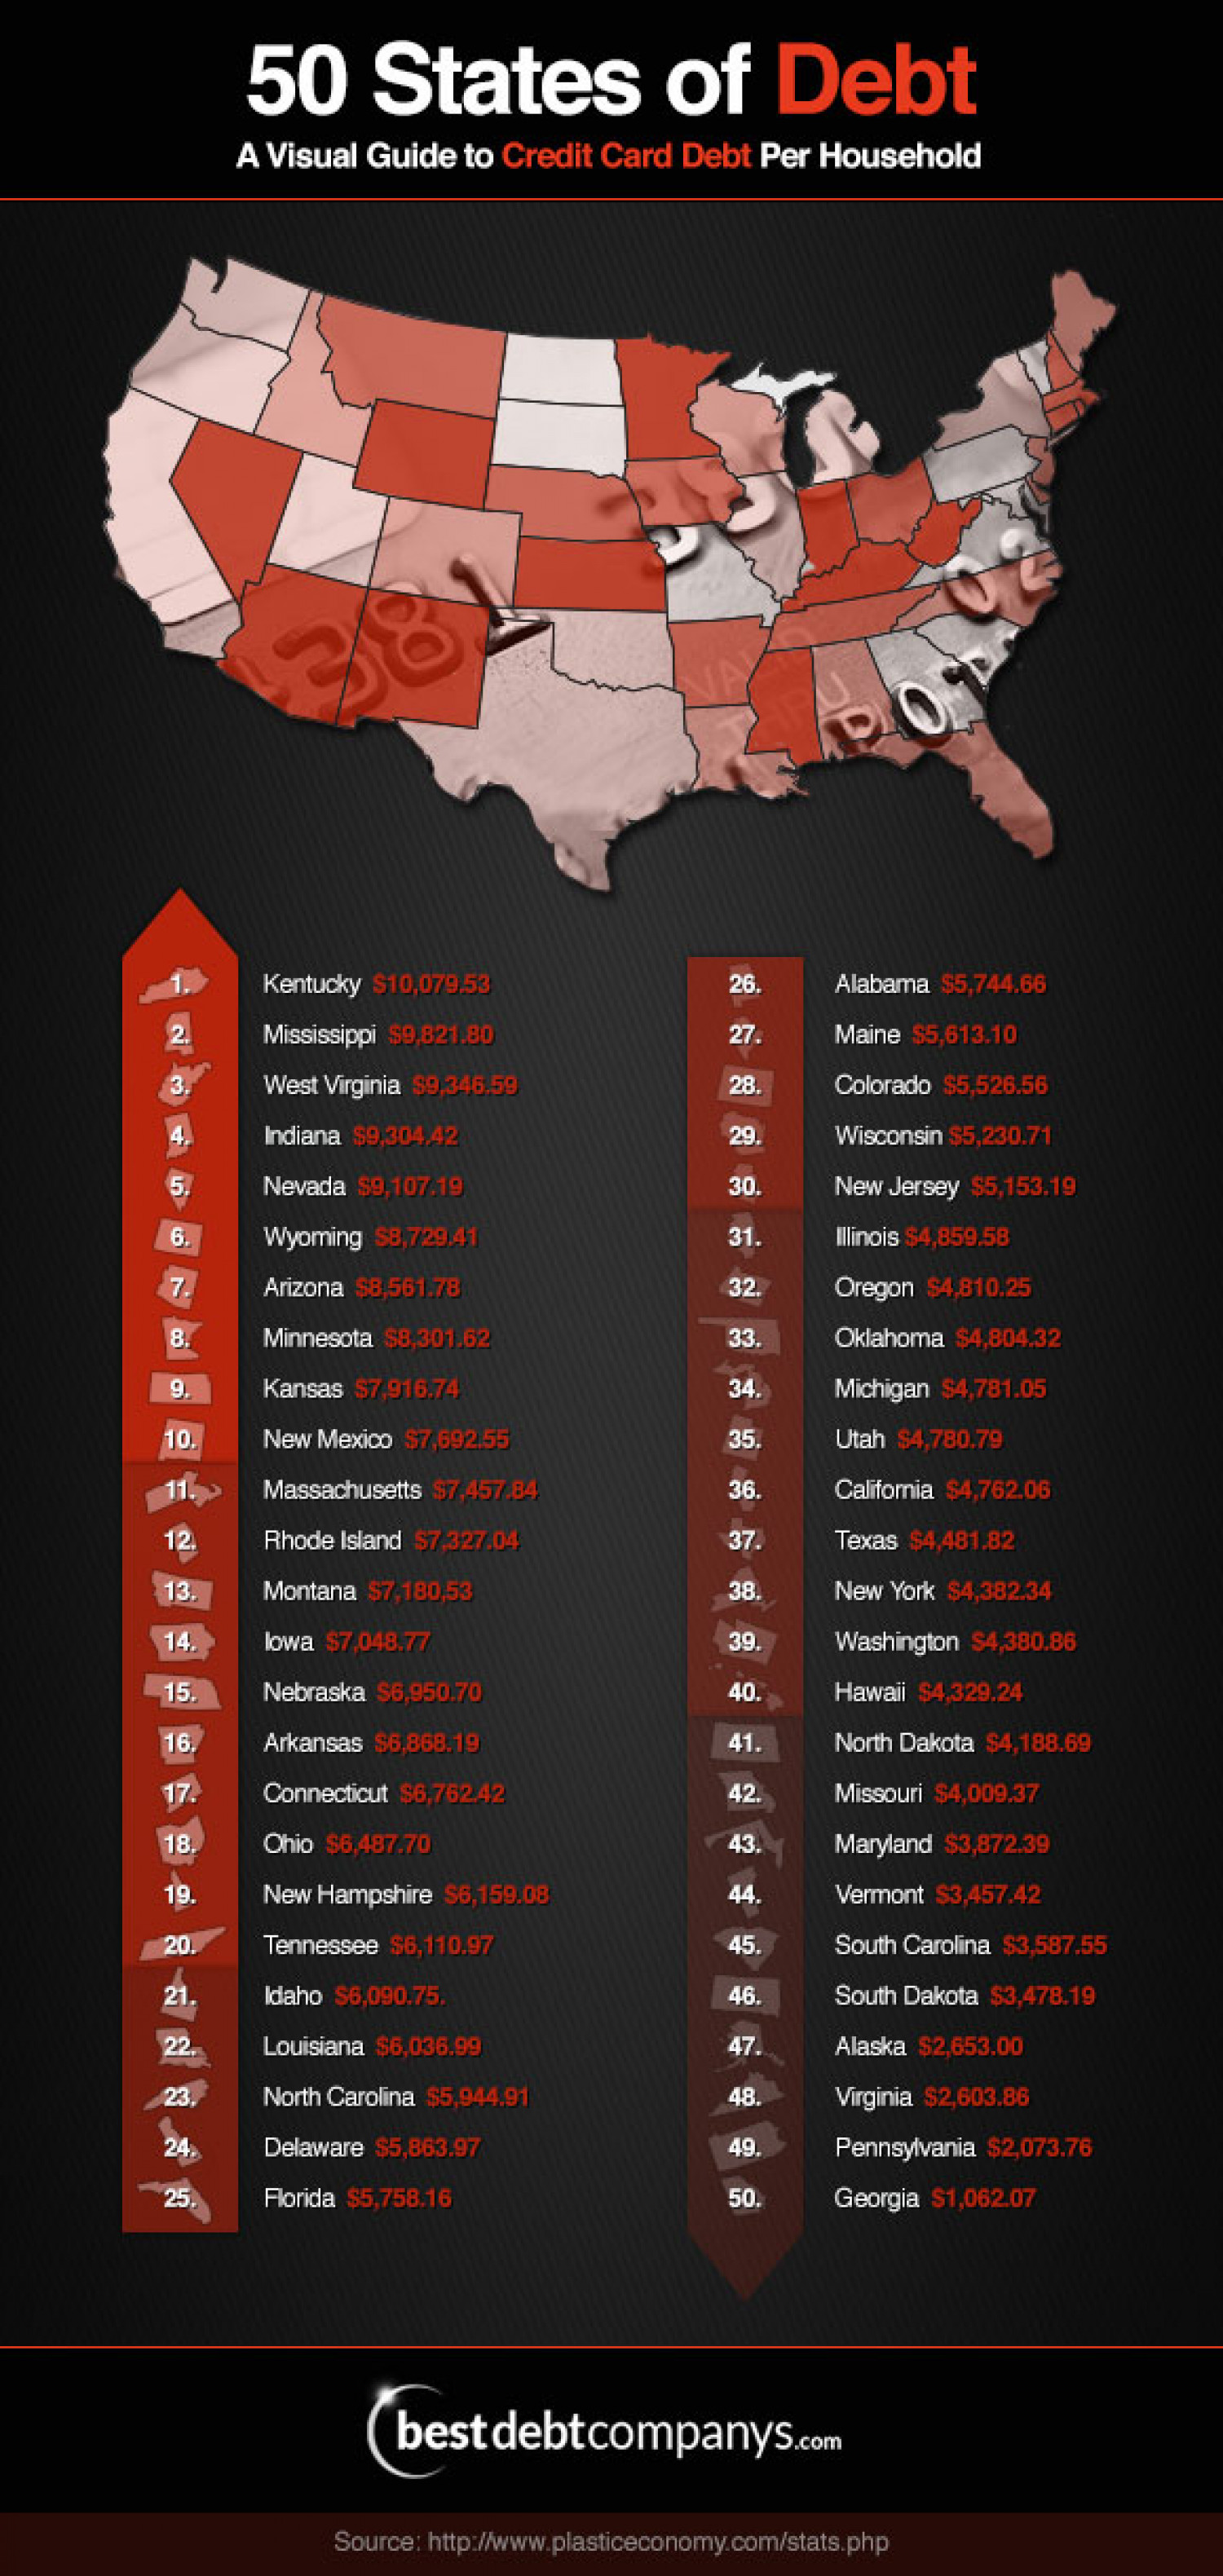 50 States of Debt Infographic